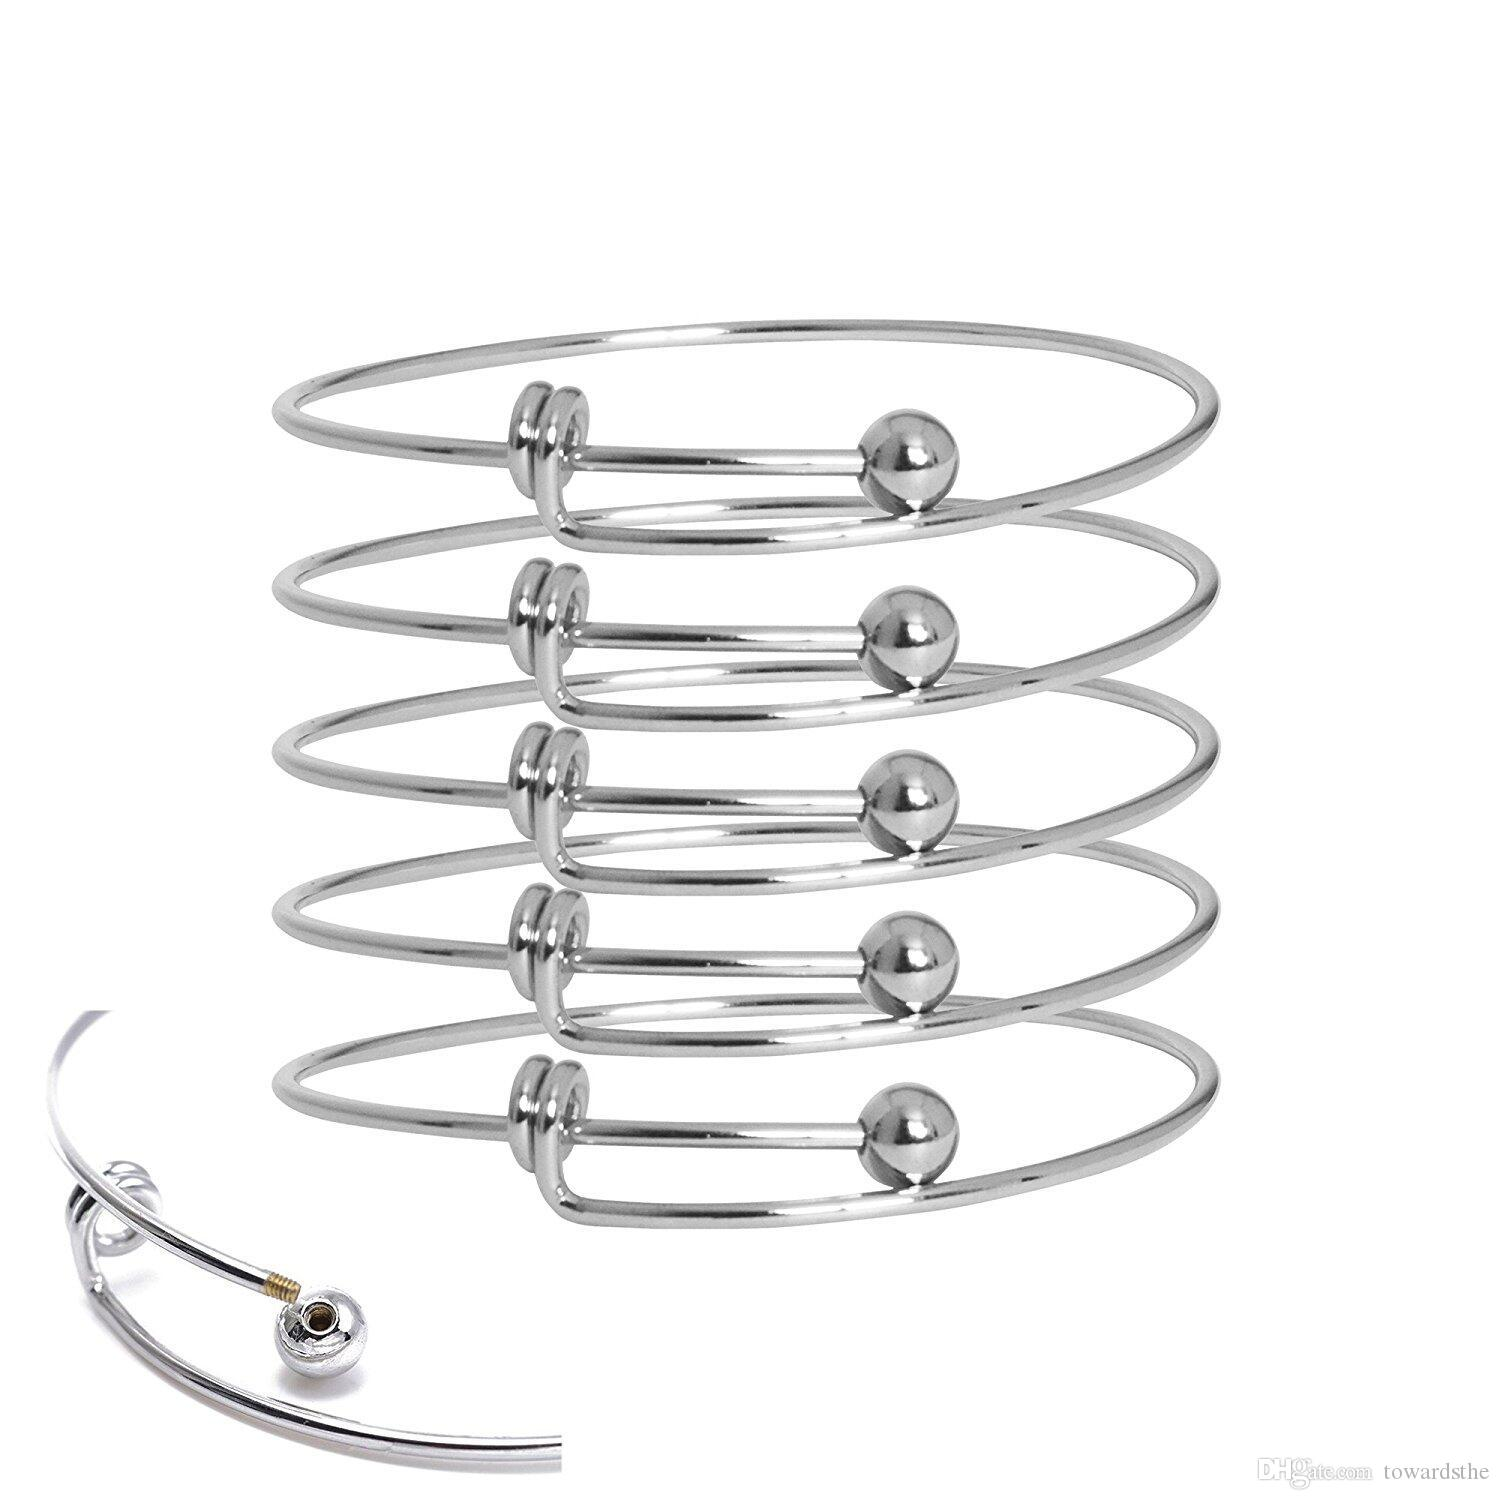 the fashion bracelet provides stainless steel toner with